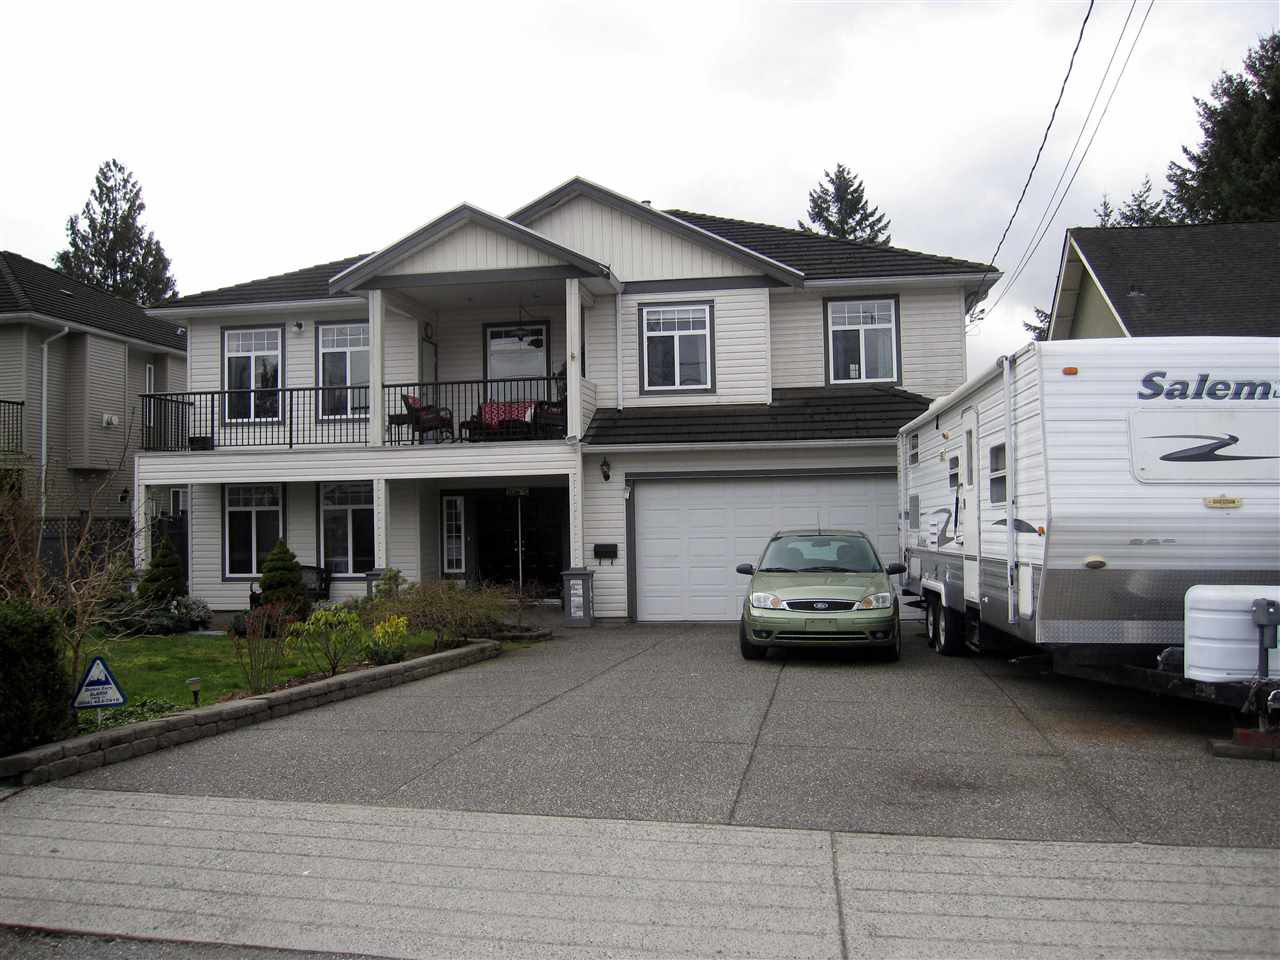 Main Photo: 20670 LORNE Avenue in Maple Ridge: Southwest Maple Ridge House for sale : MLS®# R2251576